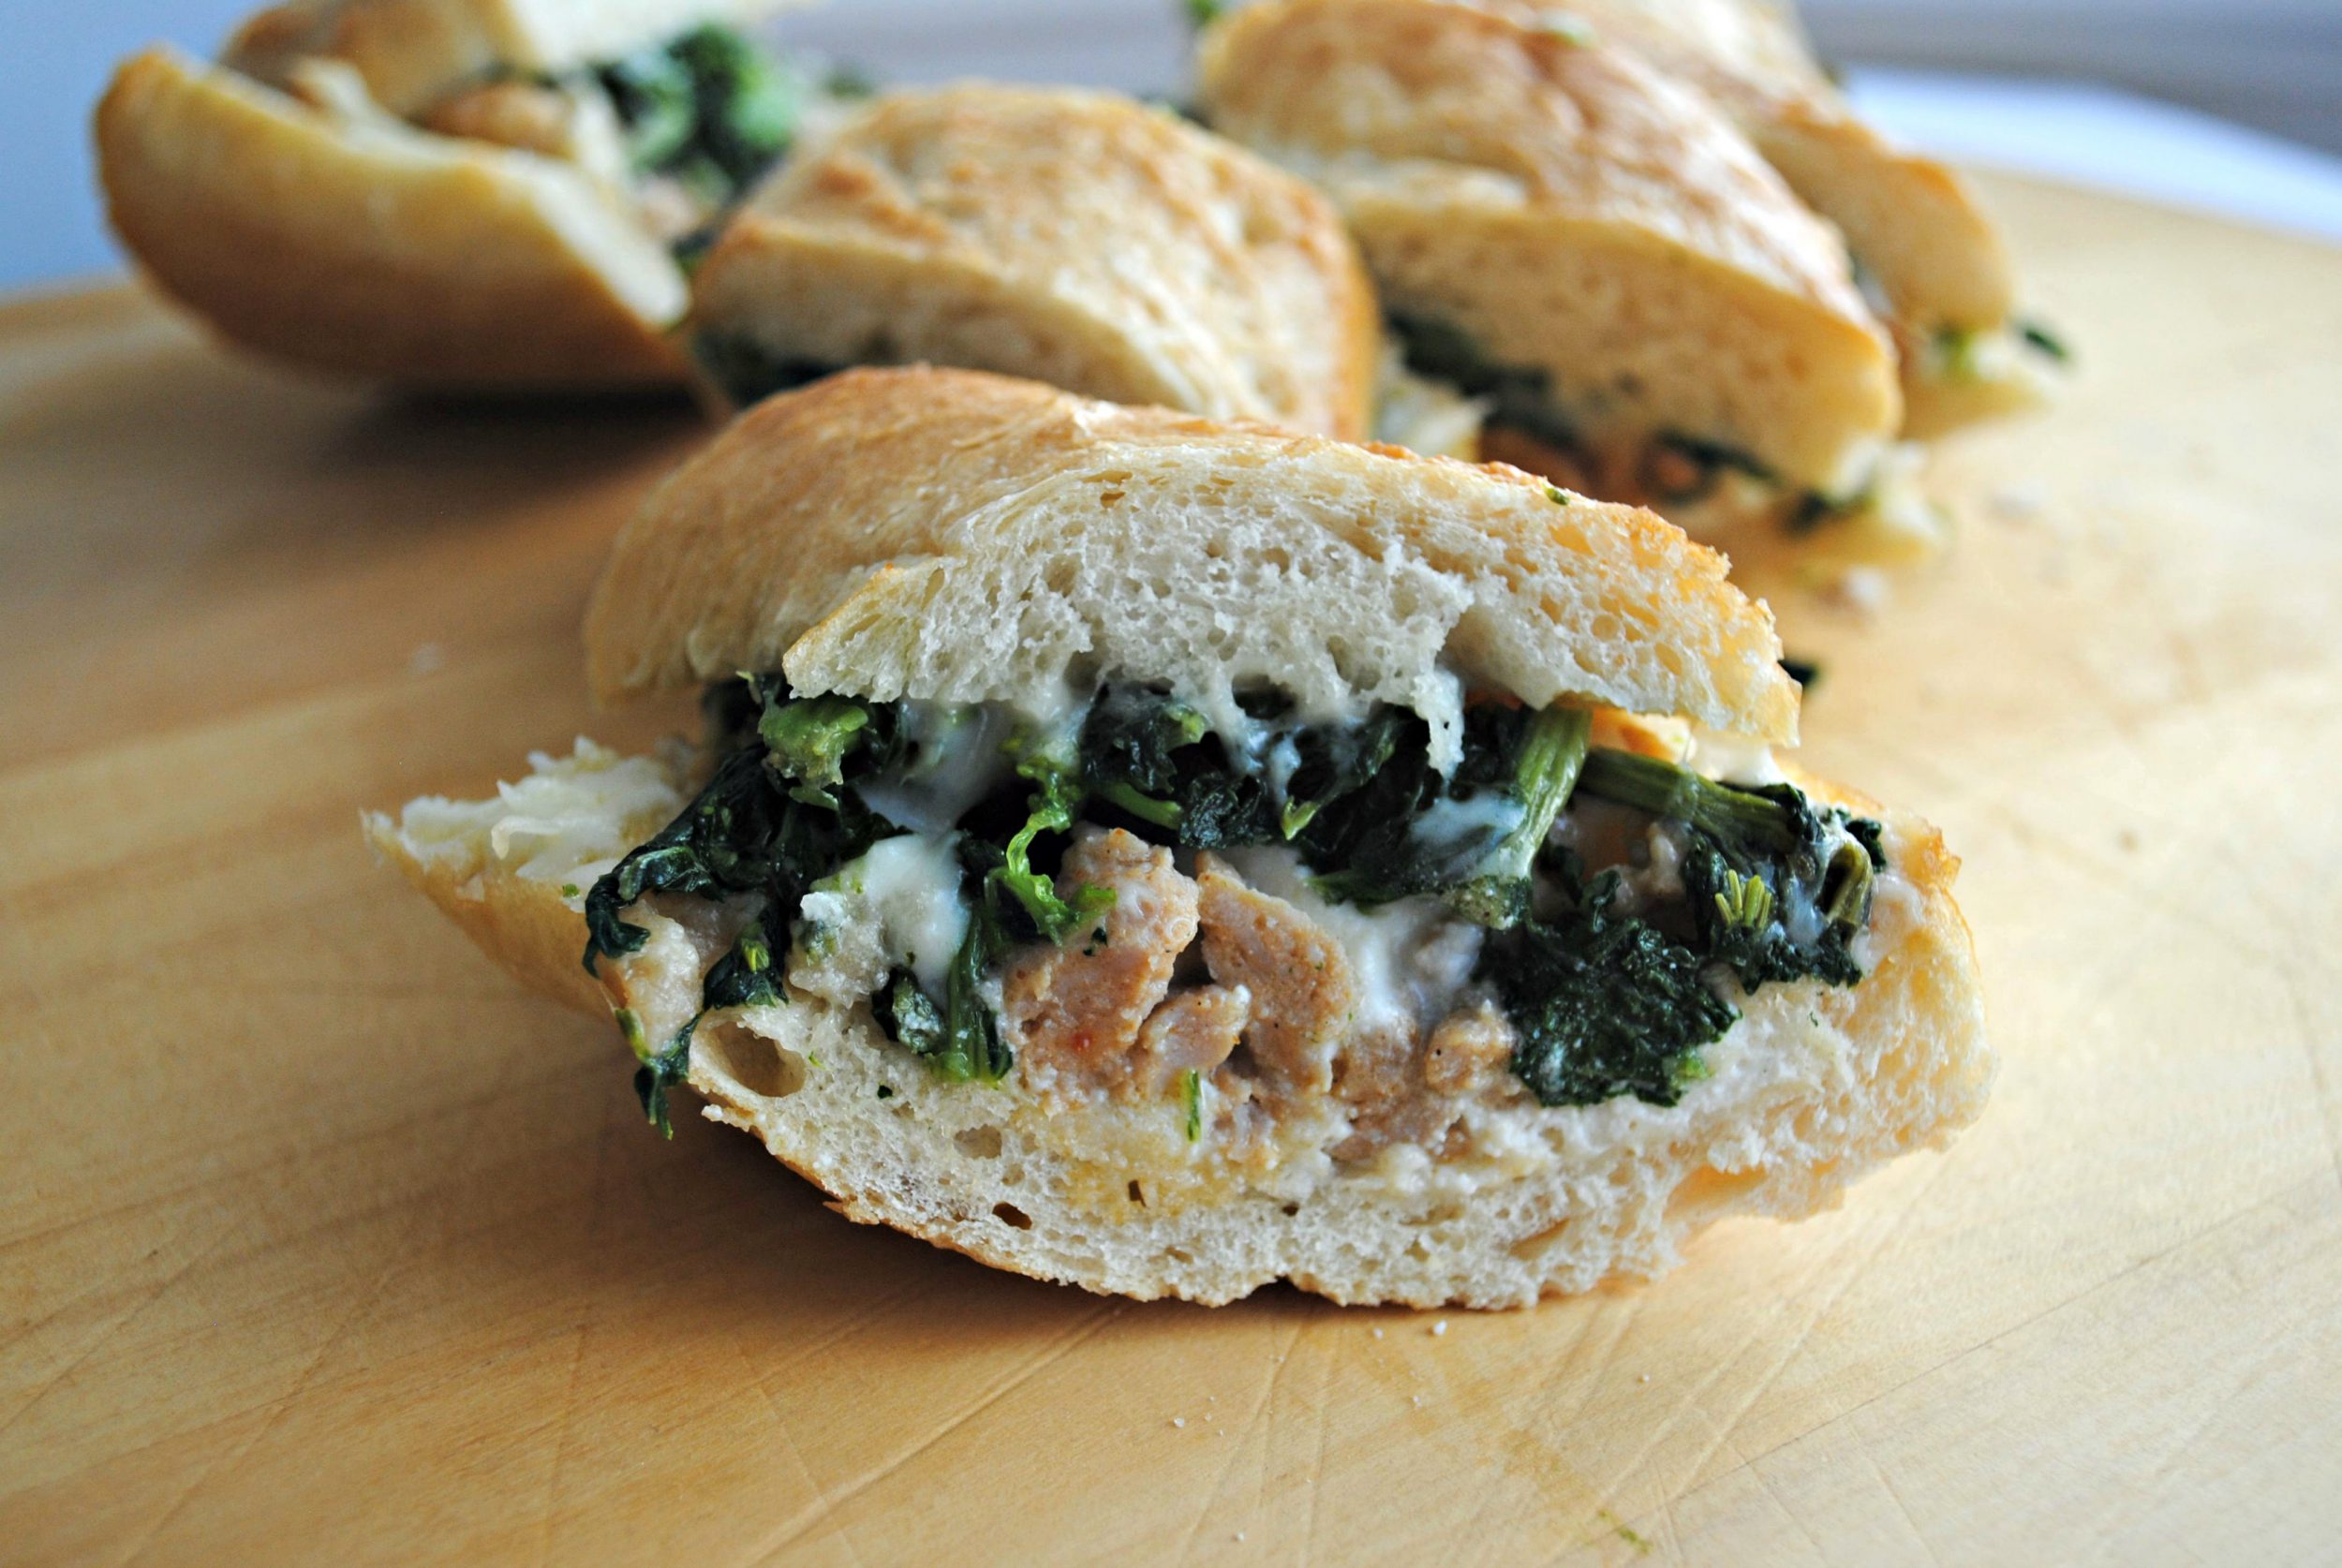 Broccoli Rabe and Sausage Bites